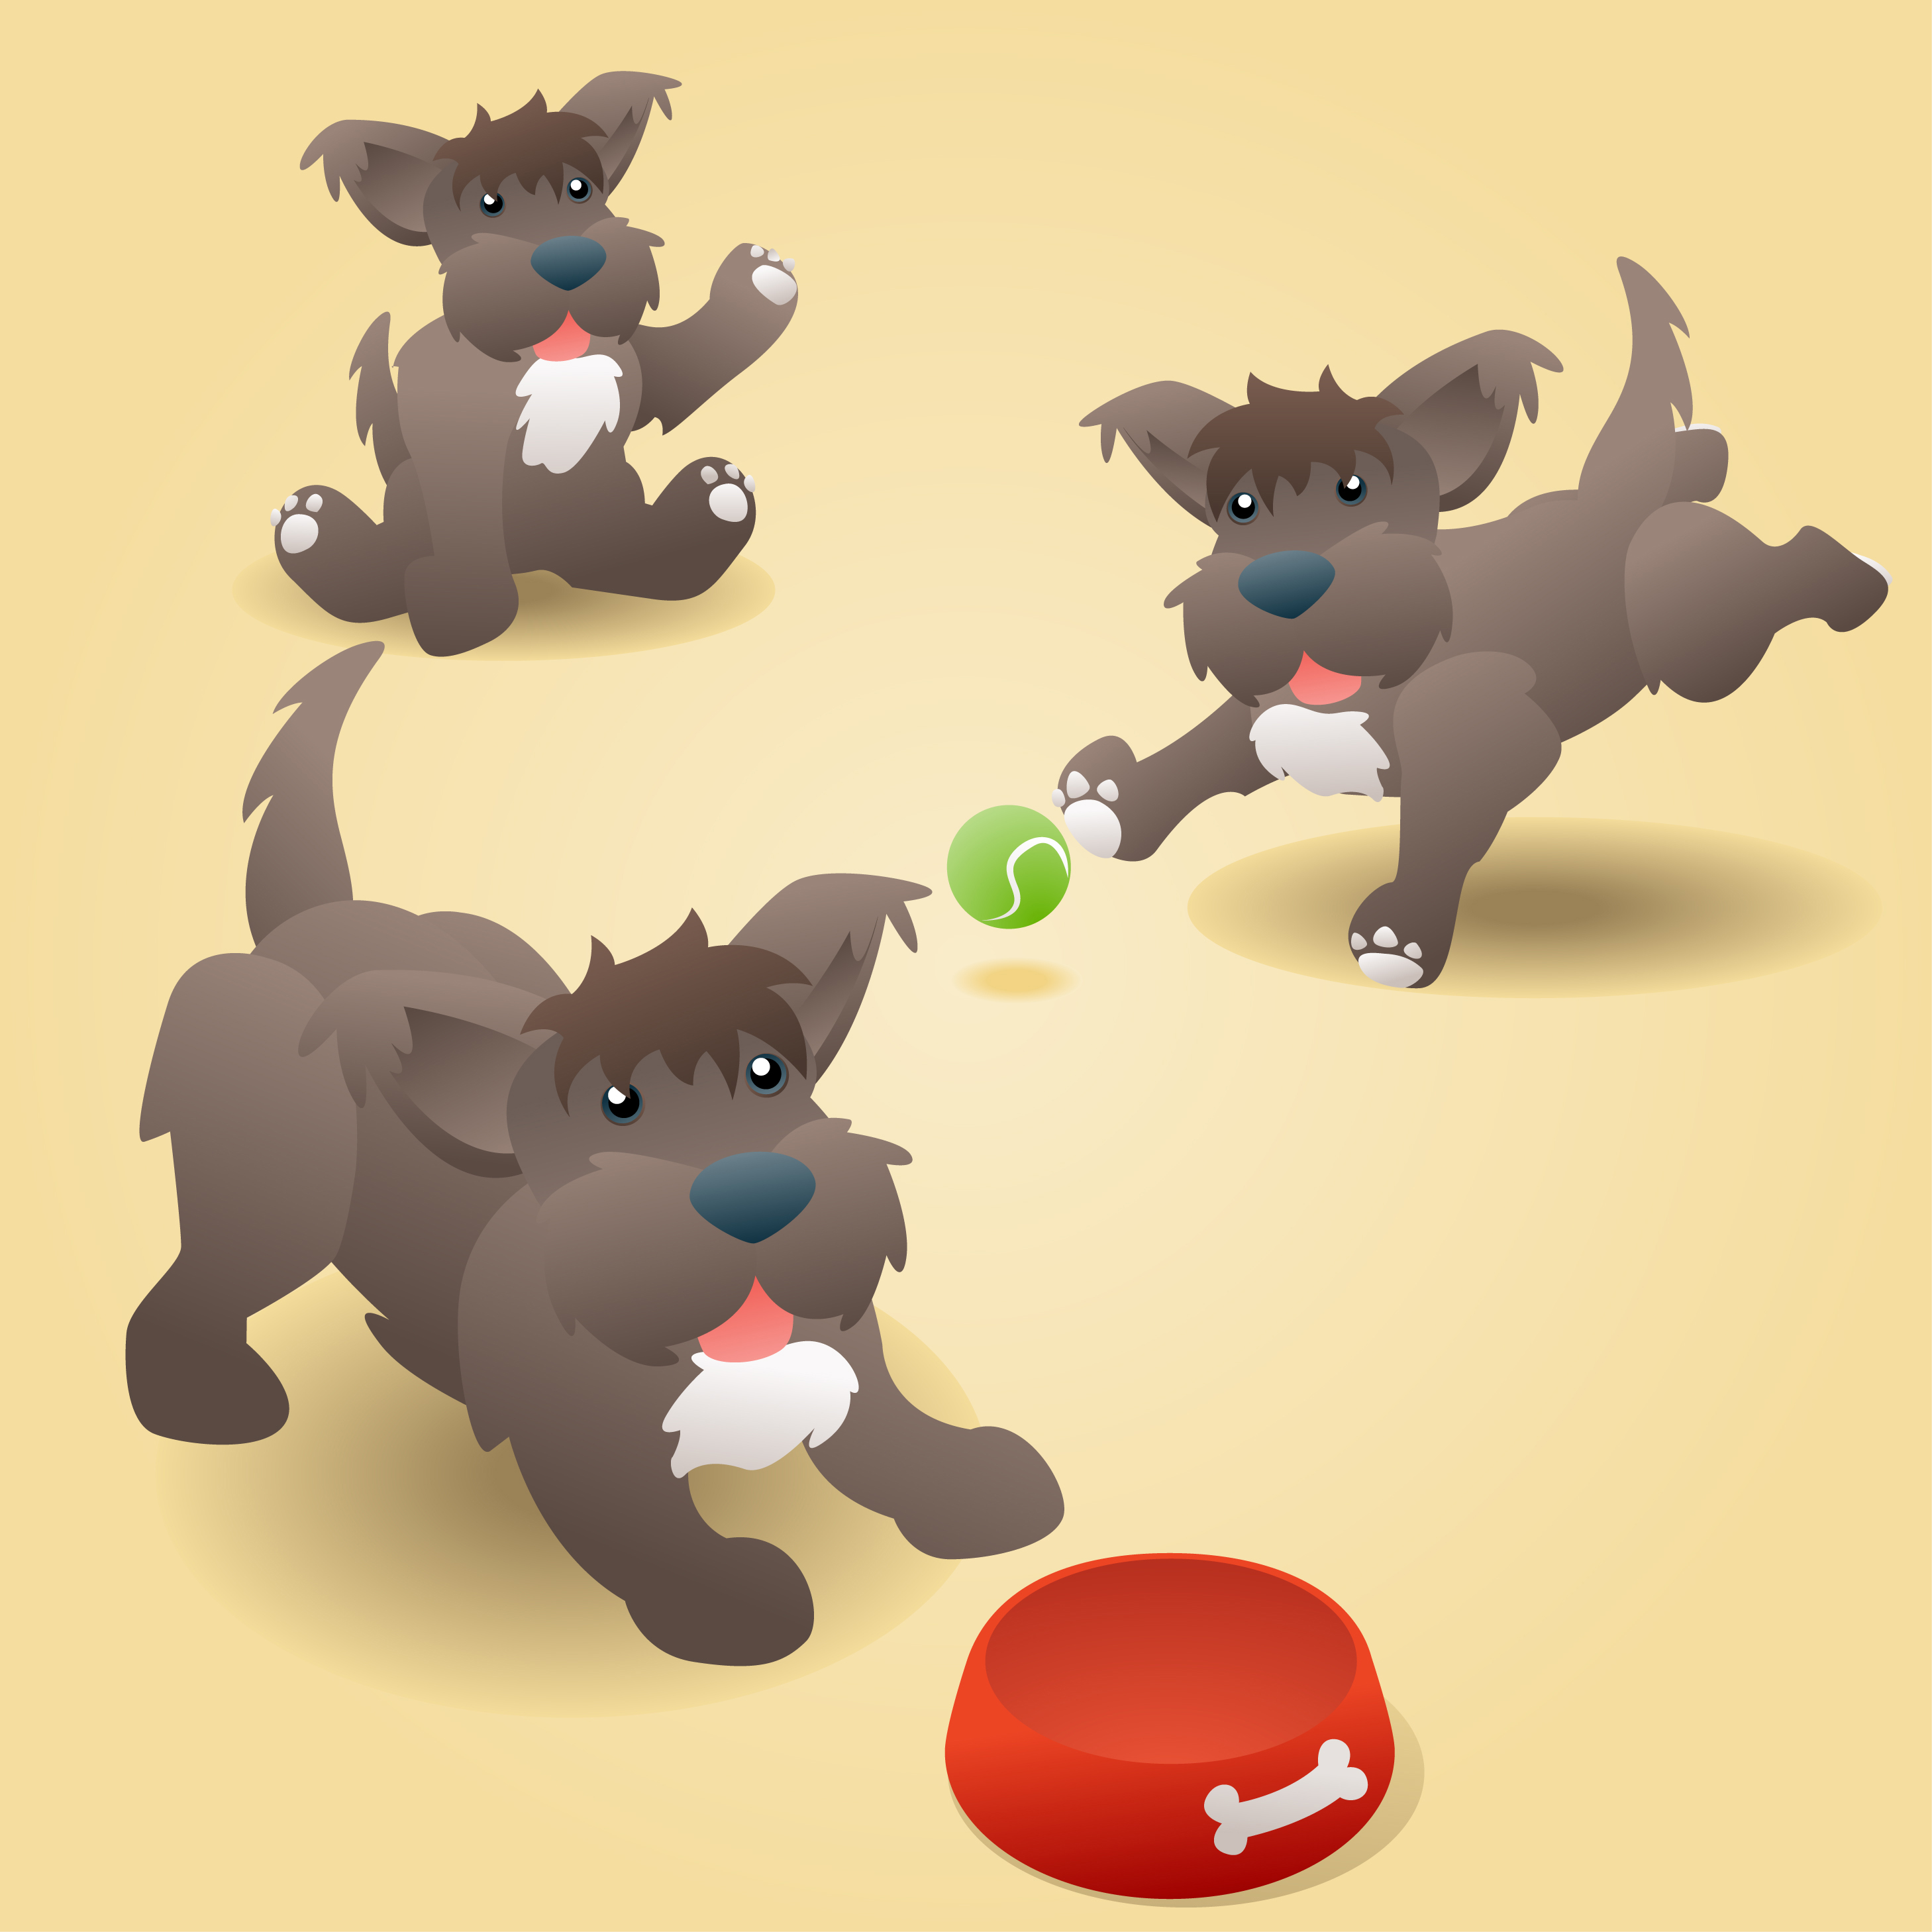 2917x2917 Cute Puppy Dog Vector Illustration Of A Cute Brown Puppy Terrier